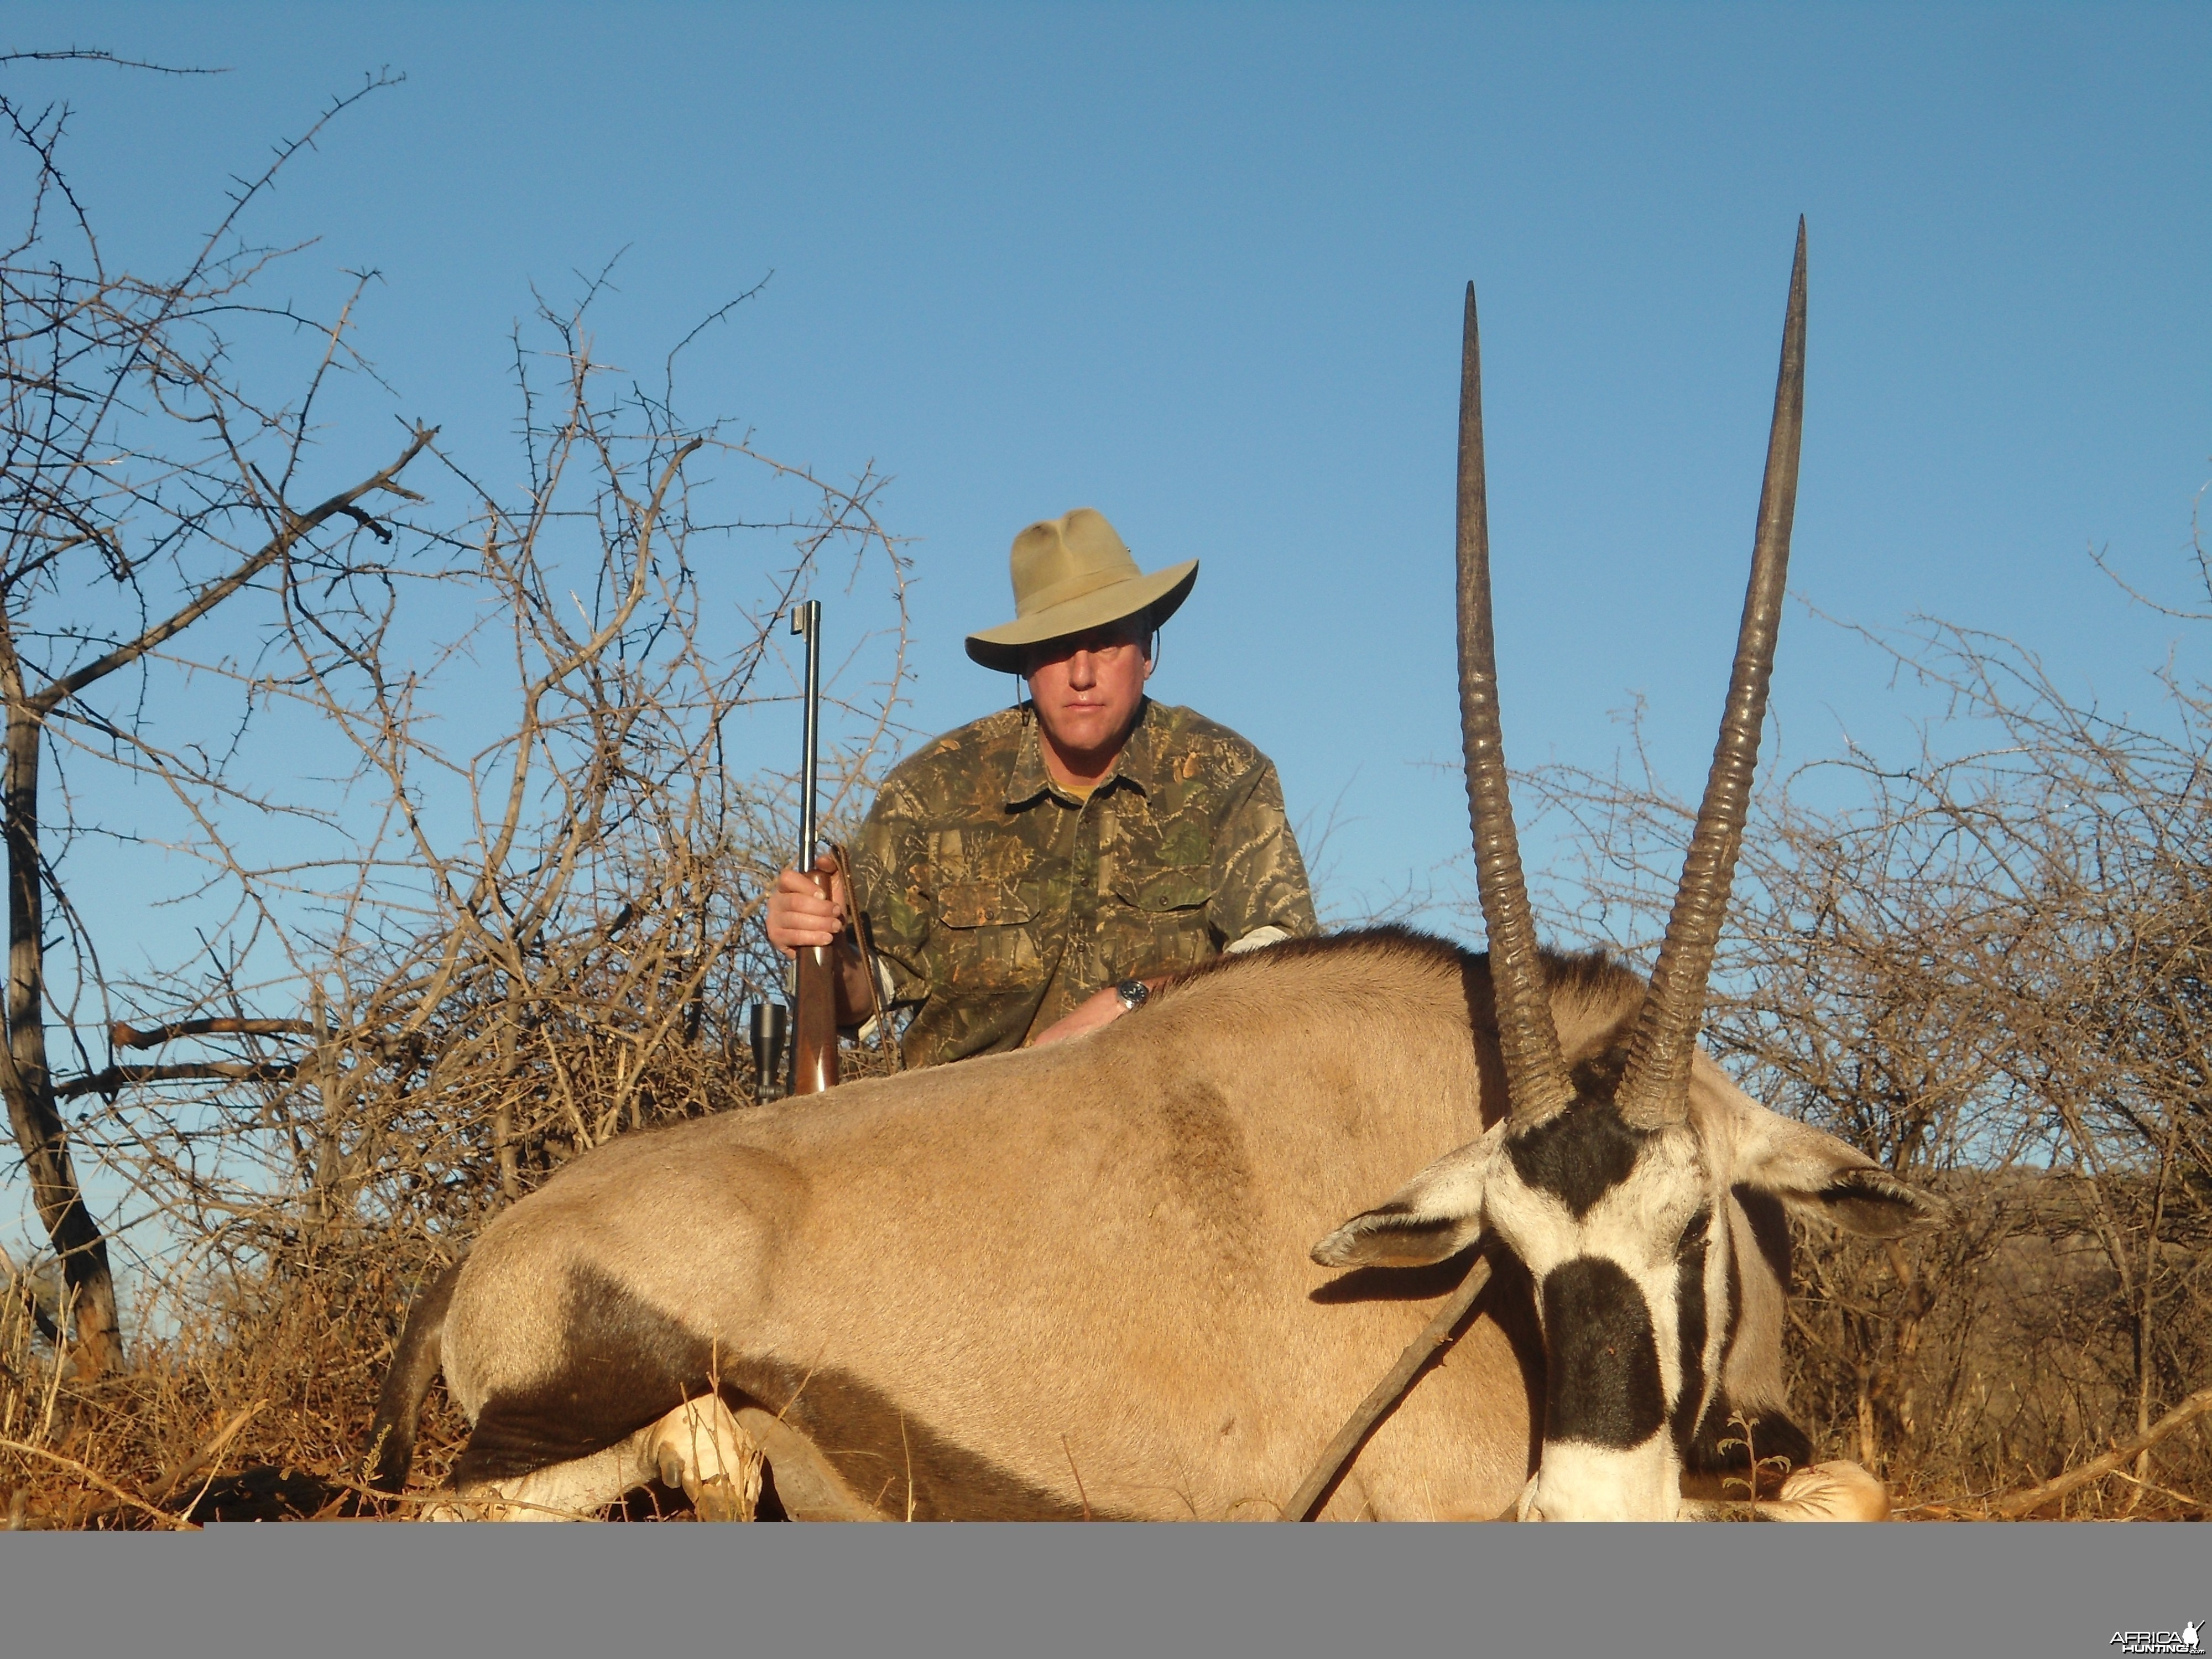 Gemsbok hunted with Ozondjahe Hunting Safaris in Namibia